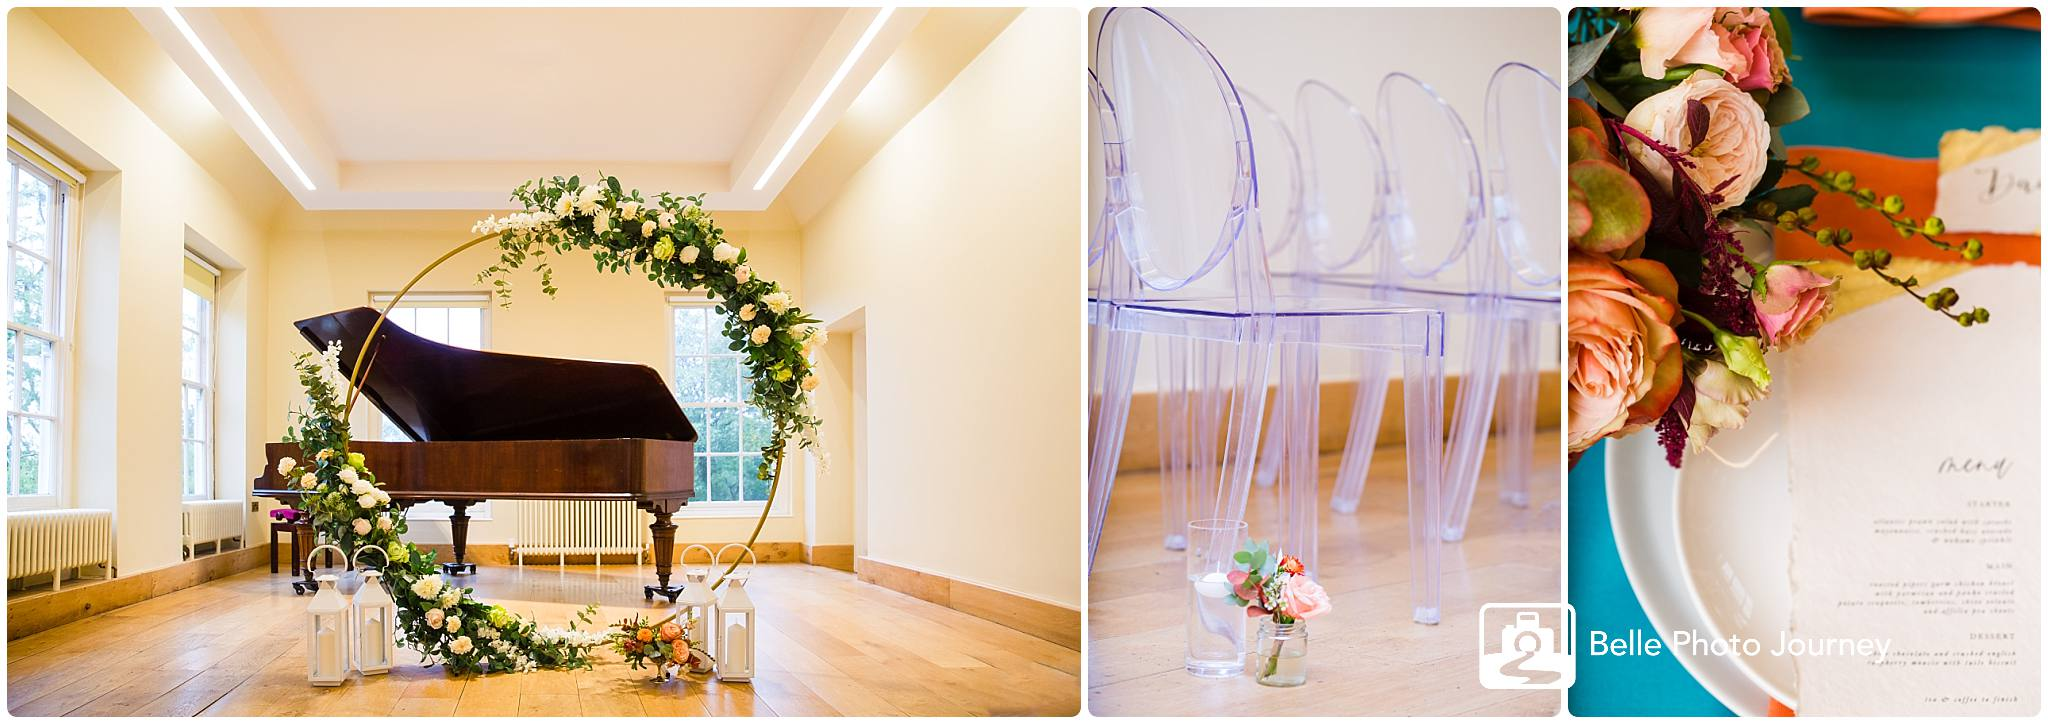 Wedding ceremony setting piano flower arc altar transparent gold chairs